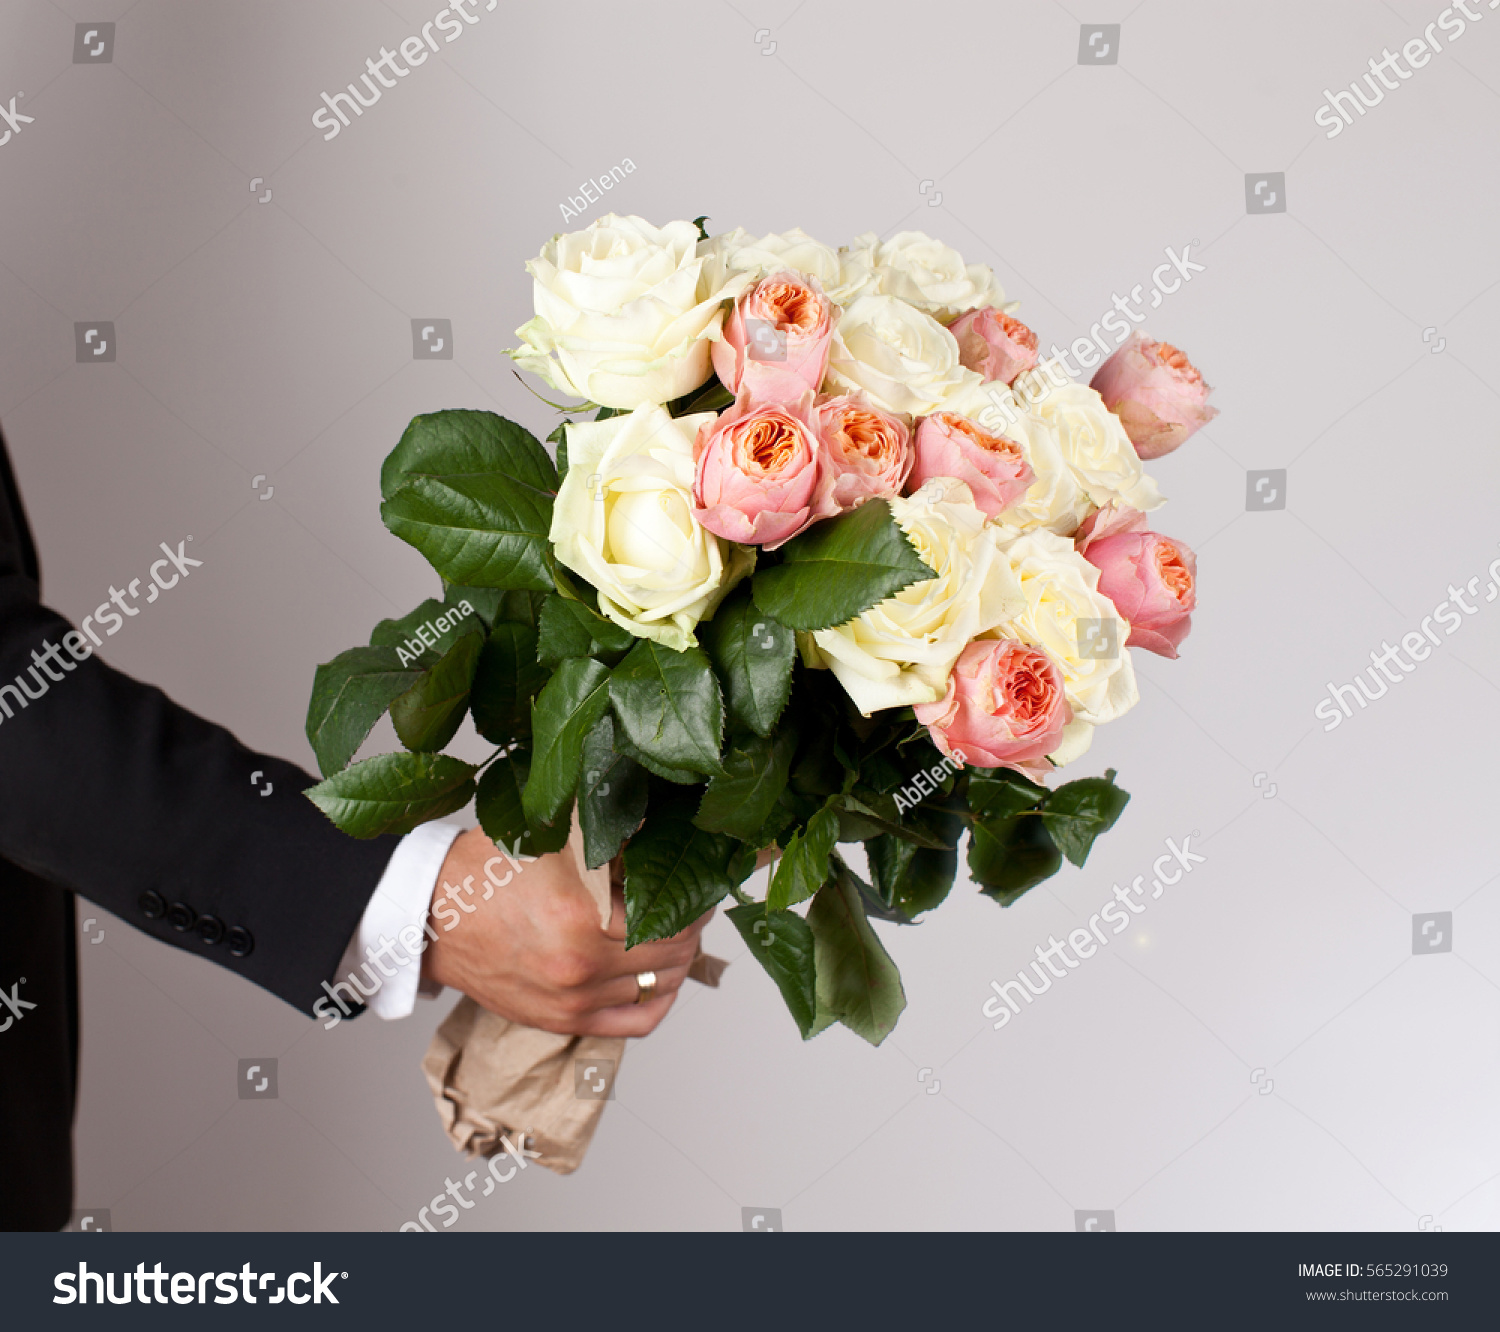 Man Big Beautiful Bouquet Nice Flowers Stock Photo (Royalty Free ...